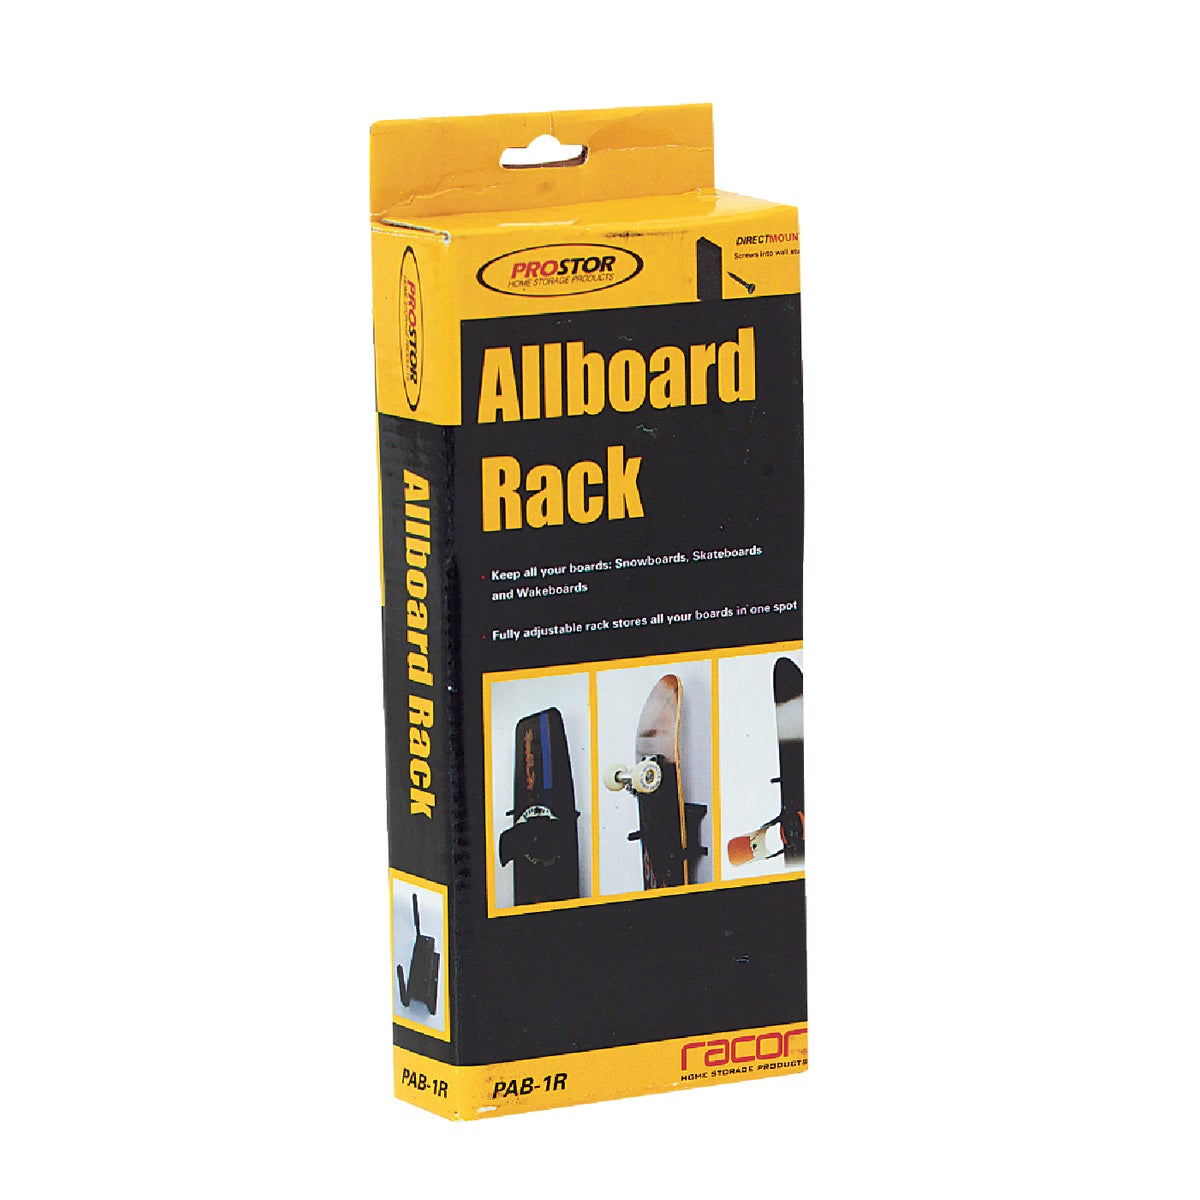 ALL BOARD RACK - PAB1R by Itw Brands